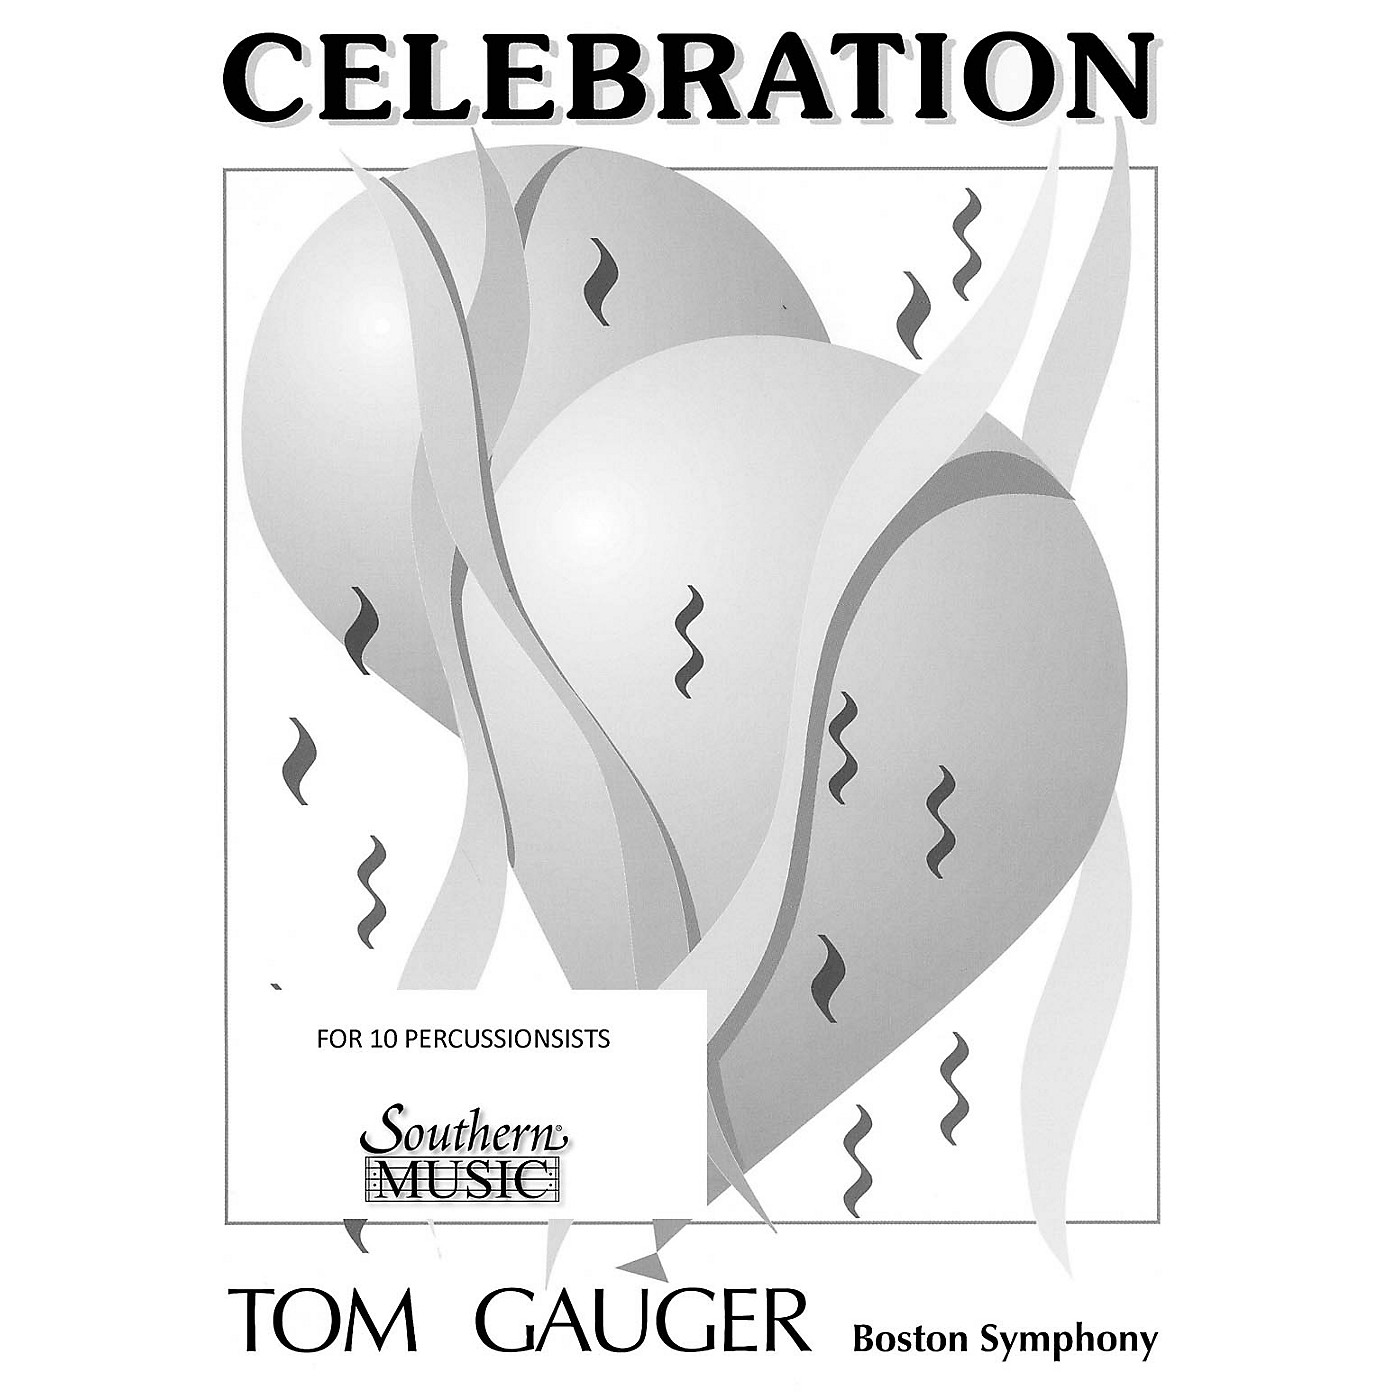 Hal Leonard Celebration (Percussion Music/Percussion Ensembles) Southern Music Series Composed by Gauger, Thomas thumbnail